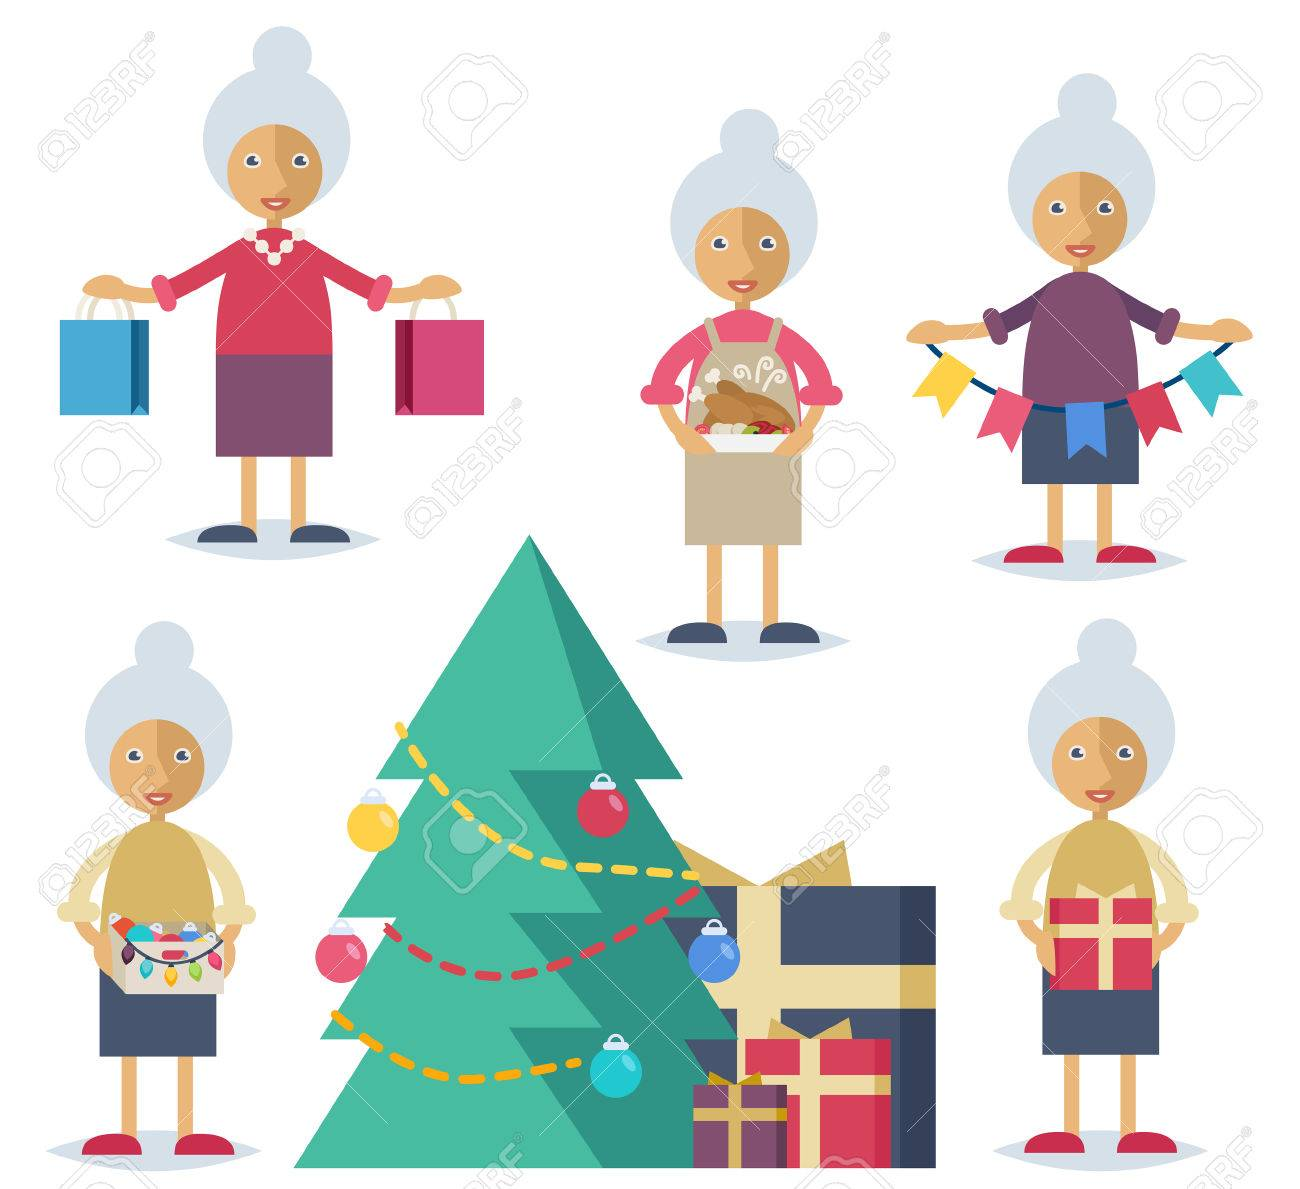 Set of characters in flat stile. An old woman shopping, cooking turkey, decorating the Christmas tree and preparing presents Stock Vector - 44592940